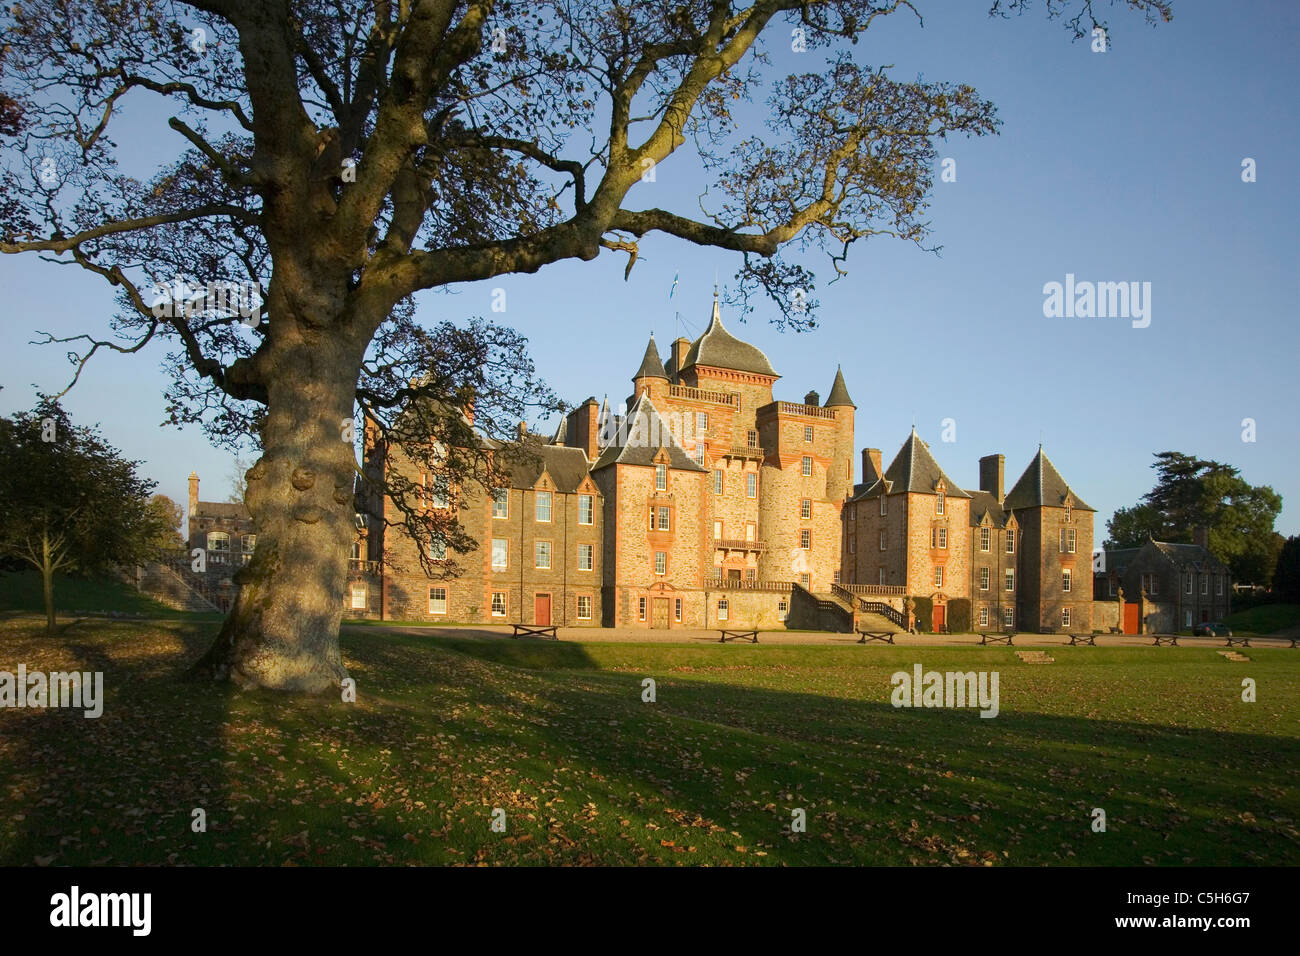 Thirlstane Castle with large beech tree to left - Stock Image